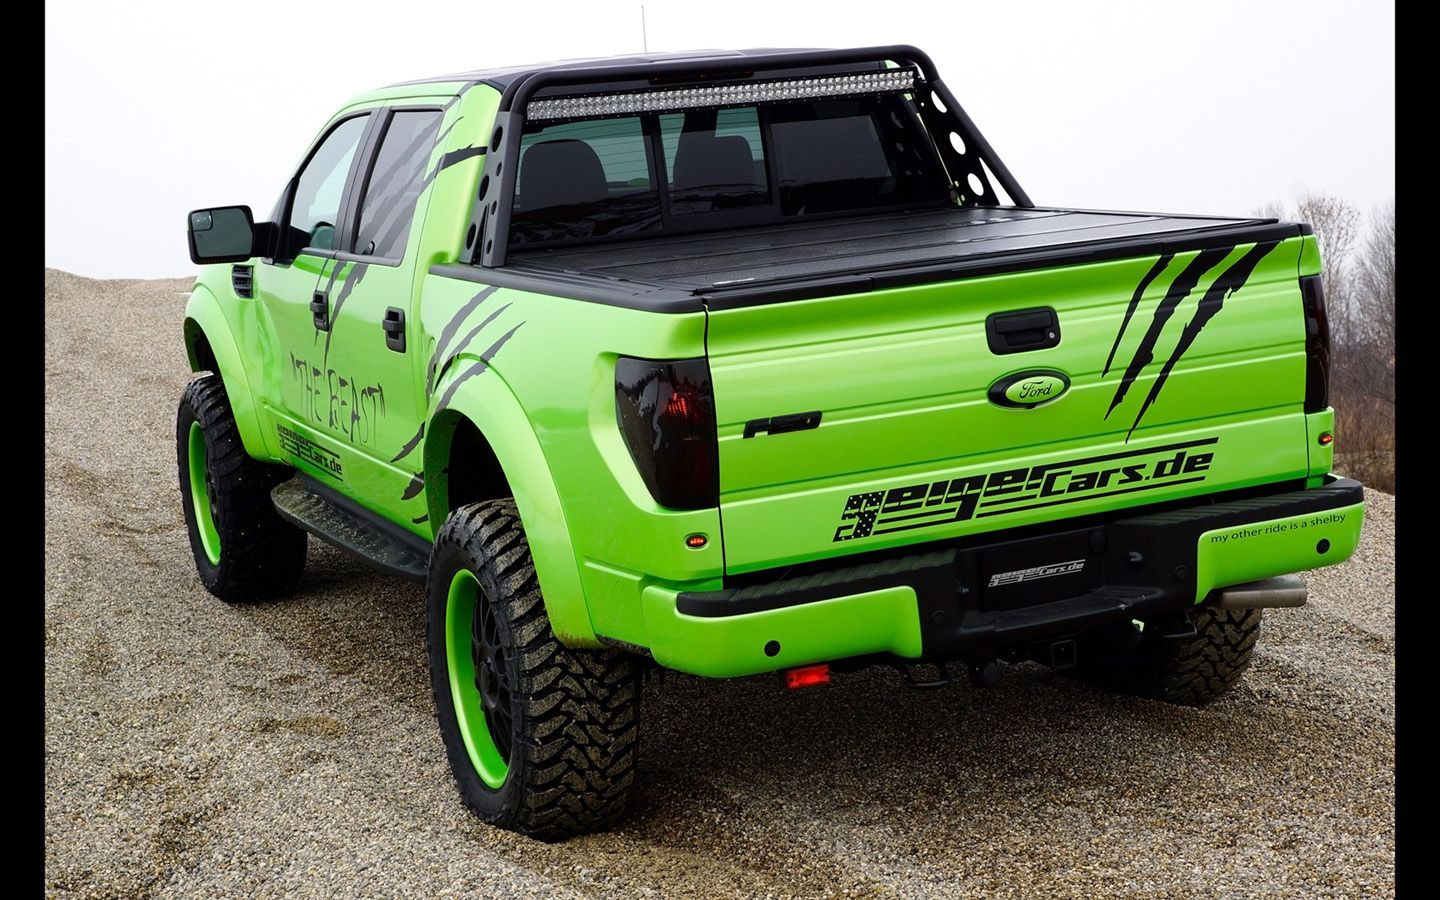 Ford Raptor 2014 Geigercars F 150 Svt Special Edition - small